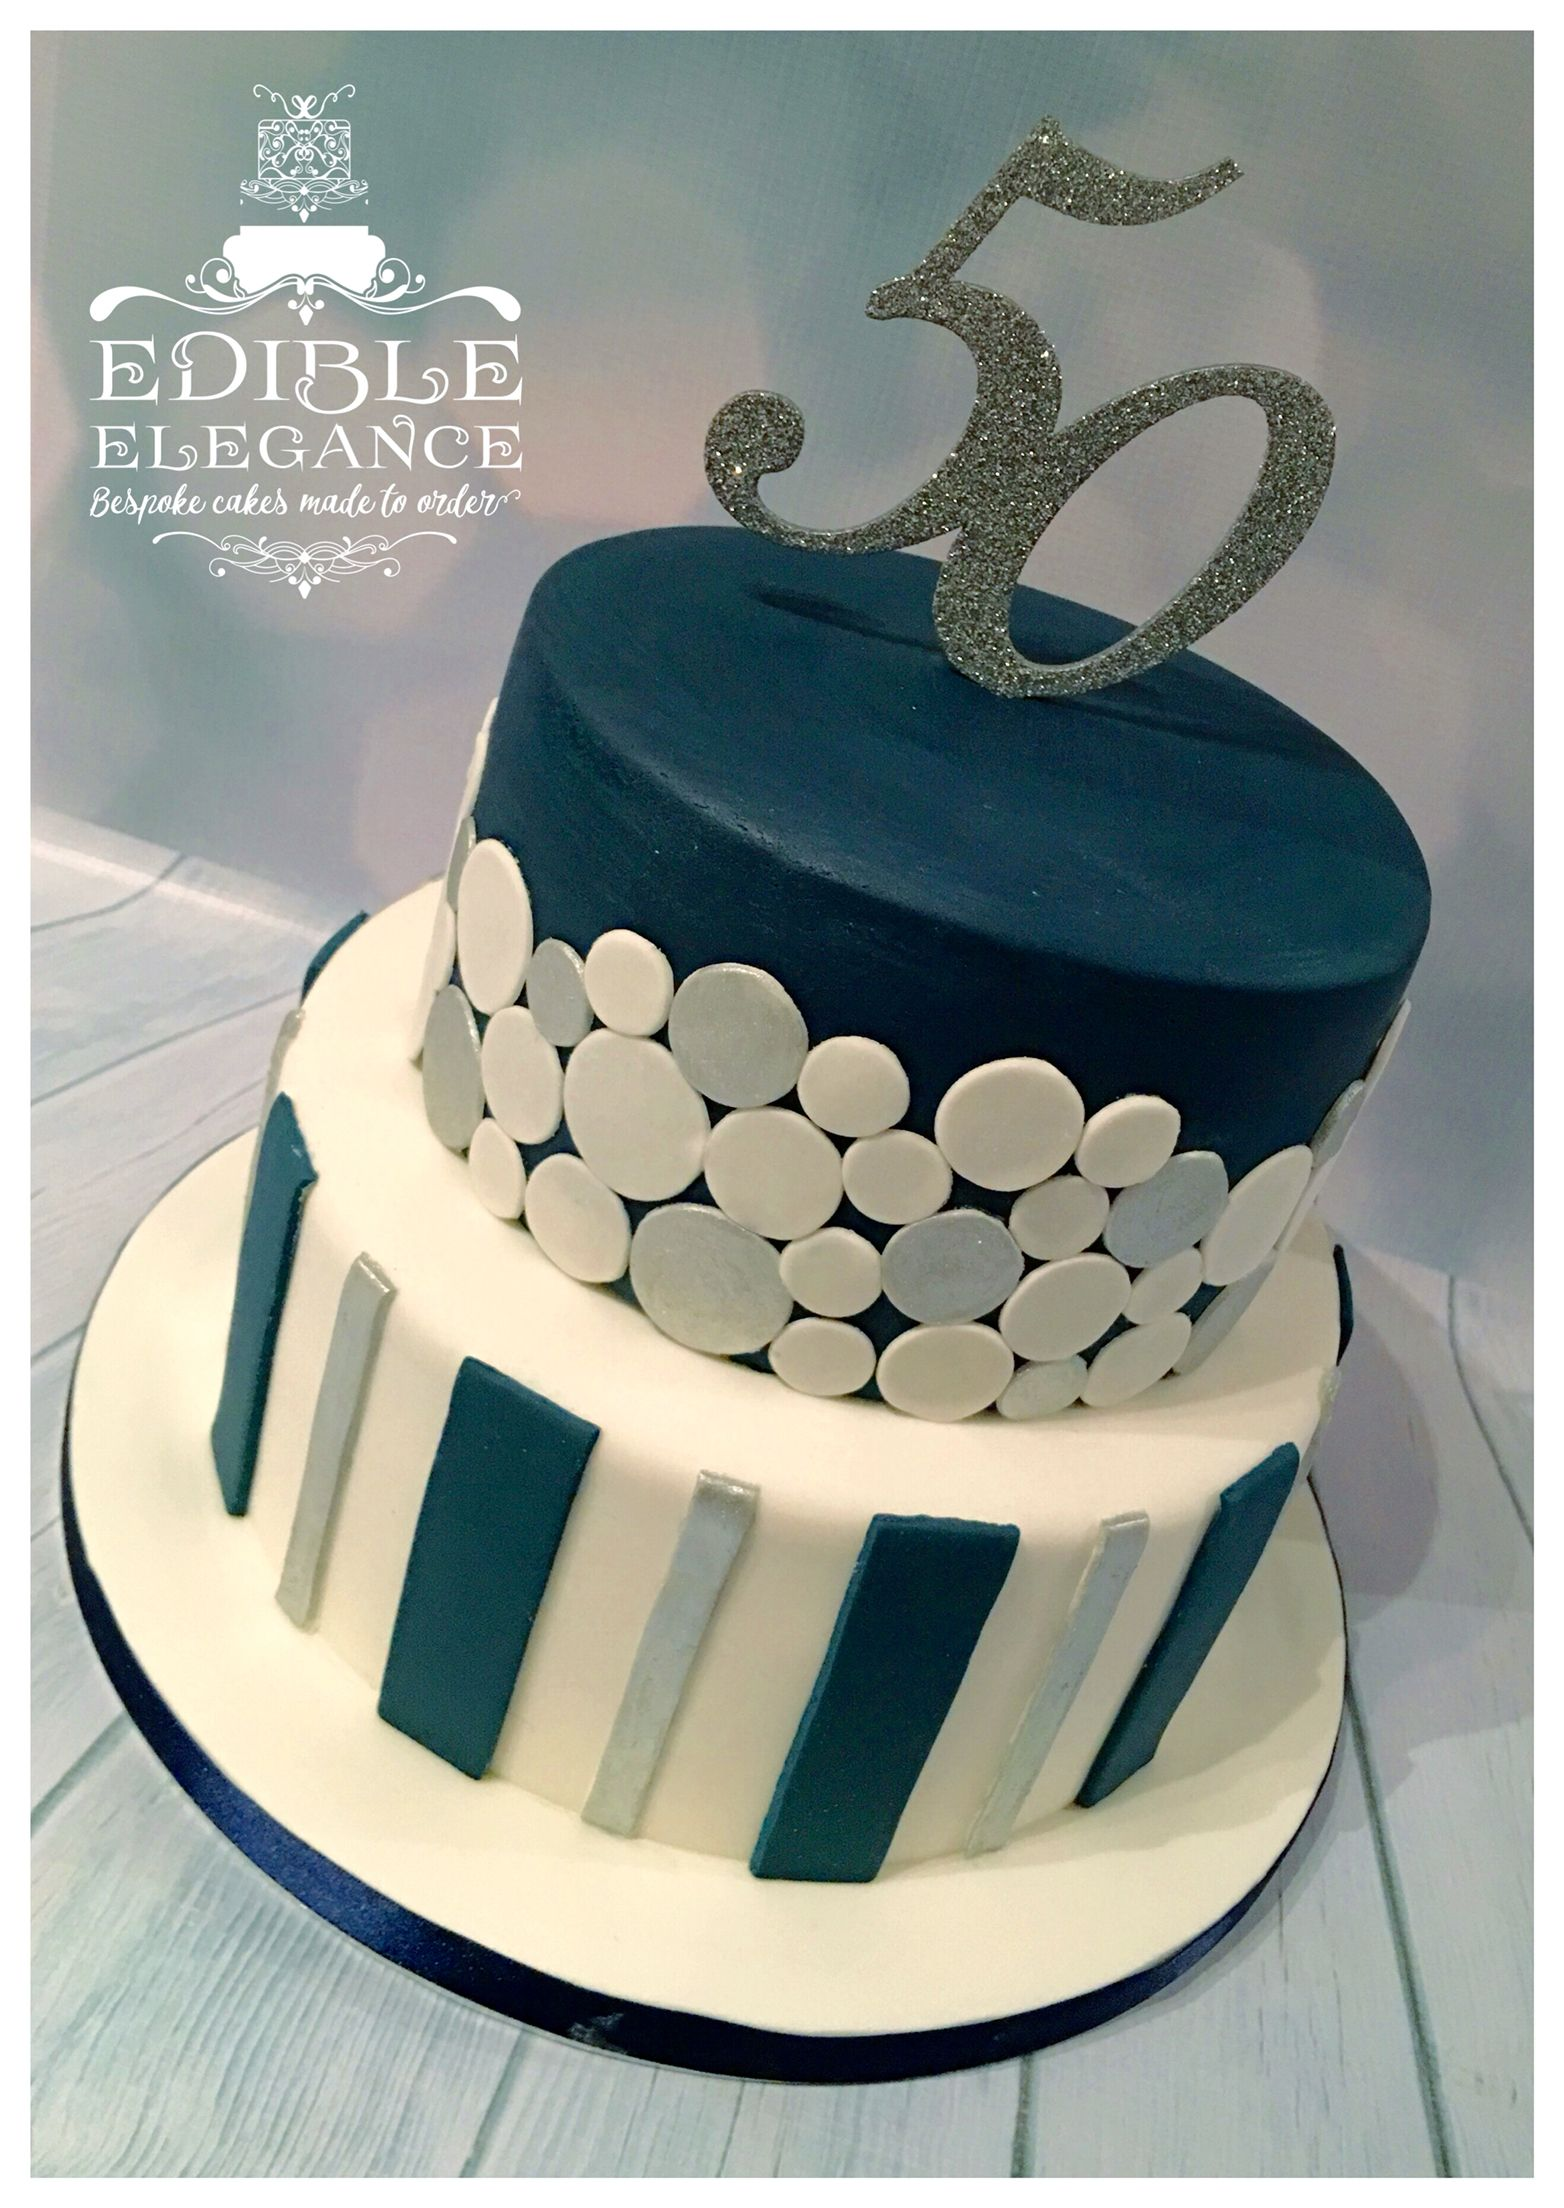 50th Birthday Cake Contemporary Design In Masculine Blue